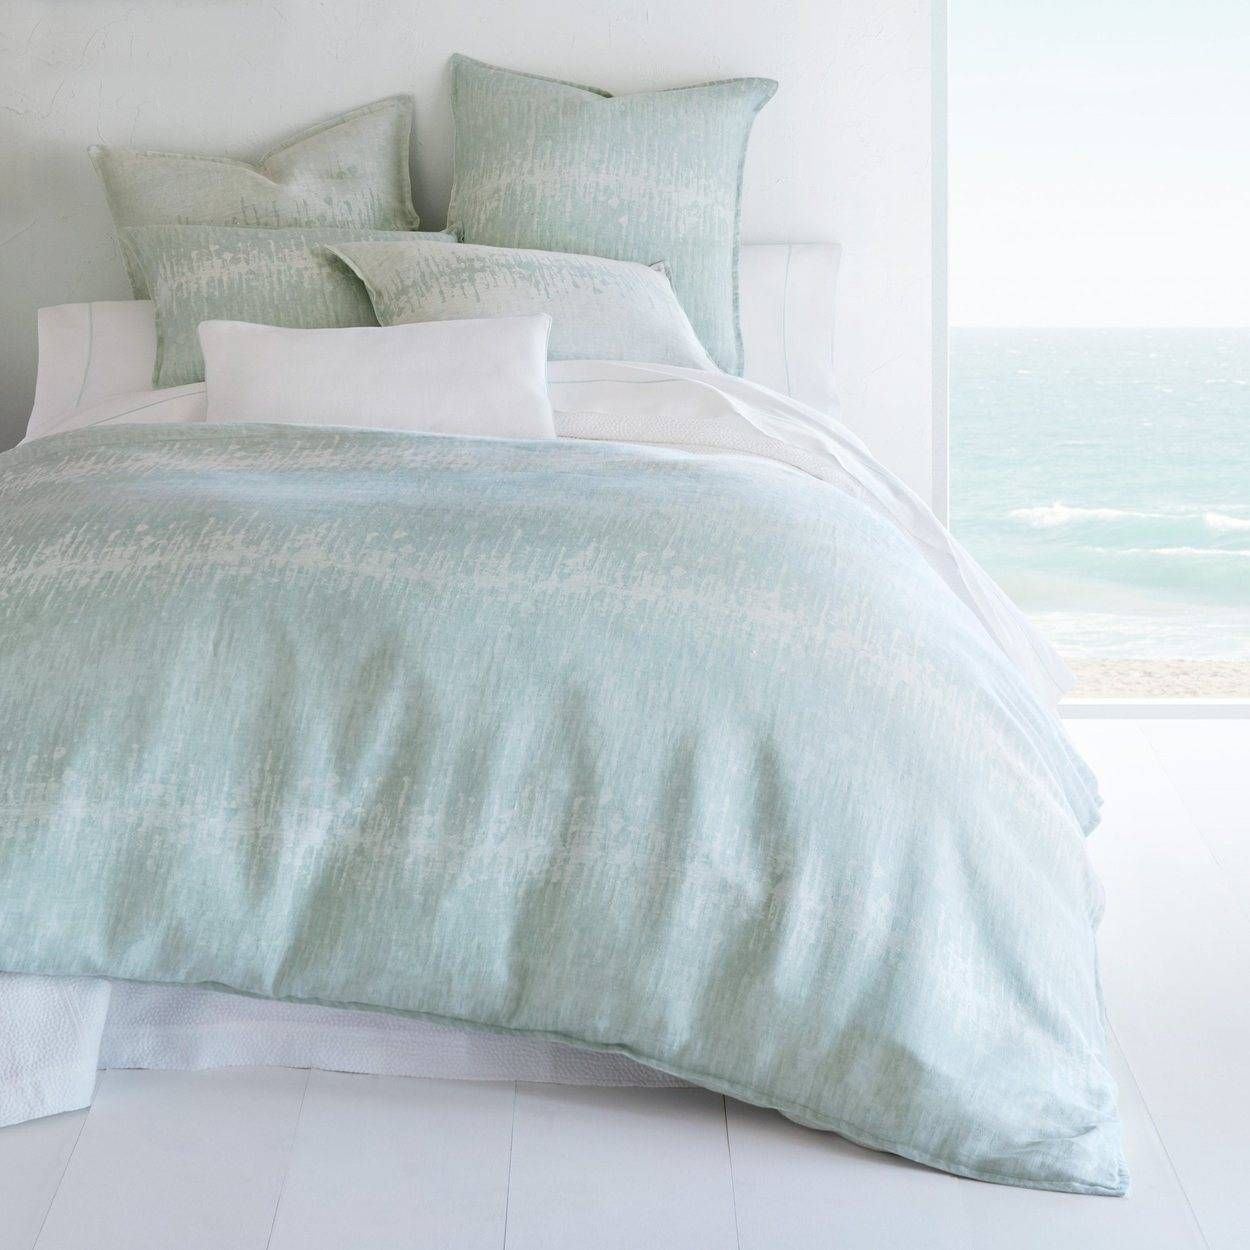 The Best Luxury Bedding High End Bedding Collections More Fl B Linen Duvet Covers Reversible Duvet Covers Linen Duvet